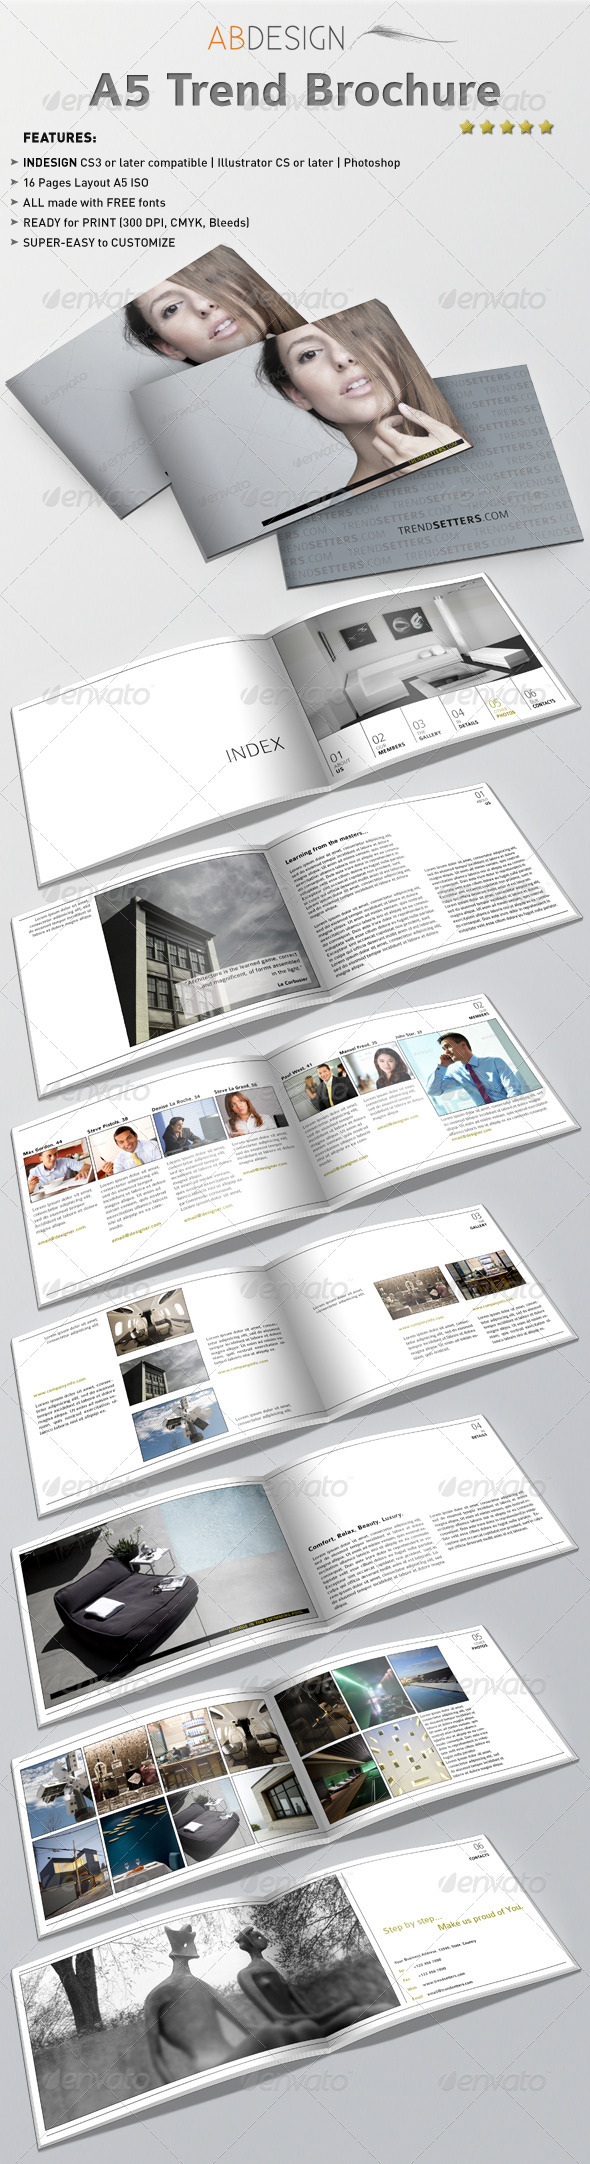 A5 Trend Brochure  #hotel #indesign #interior • Available here → http://graphicriver.net/item/a5-trend-brochure/310012?s_rank=52&ref=pxcr